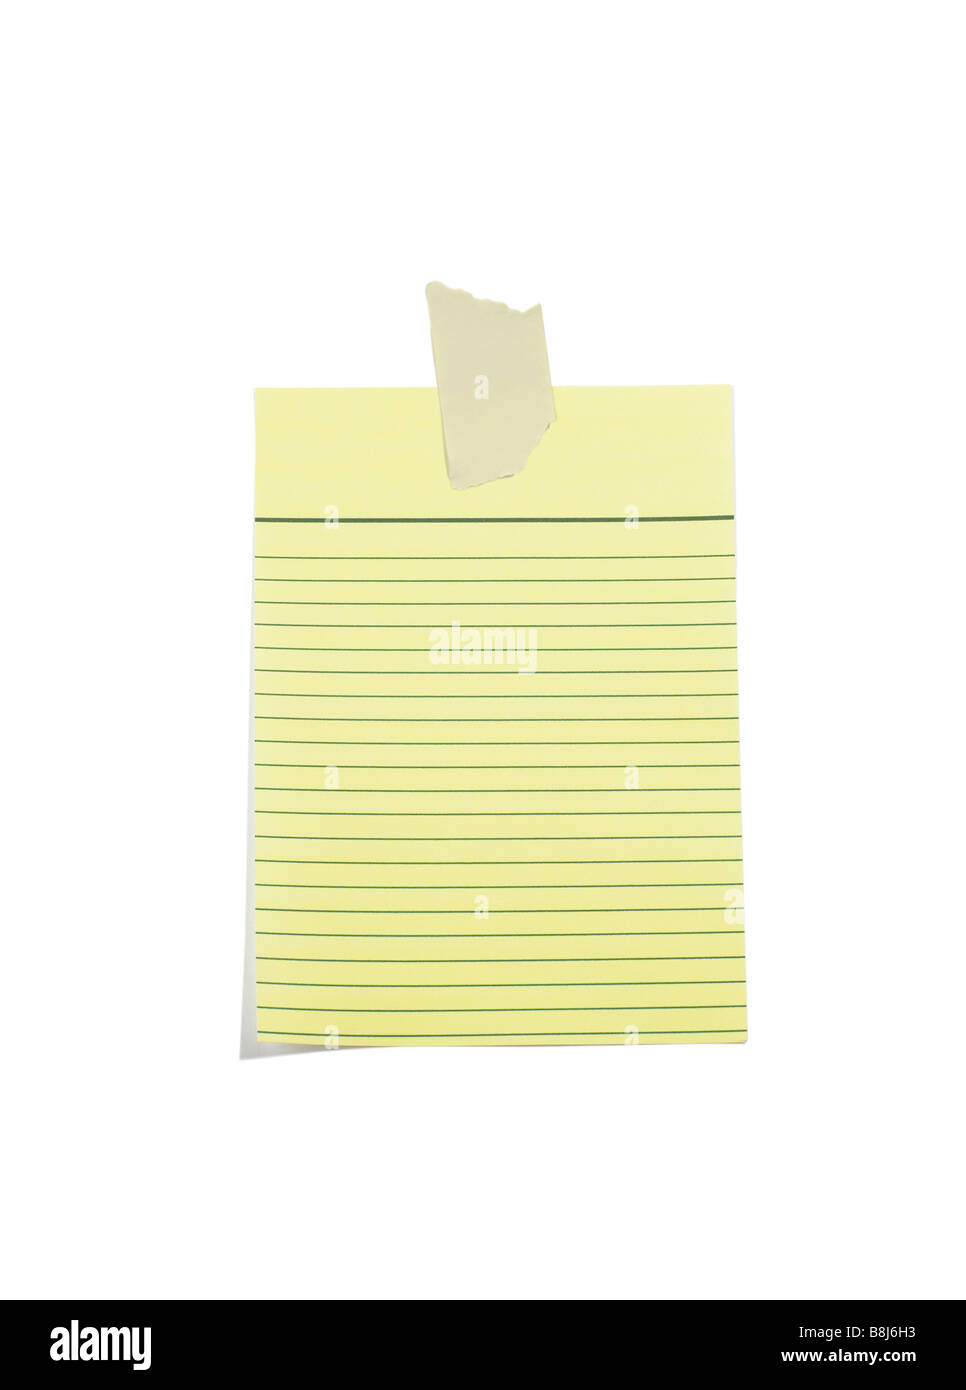 Yellow lined paper with Masking Tape - Stock Image